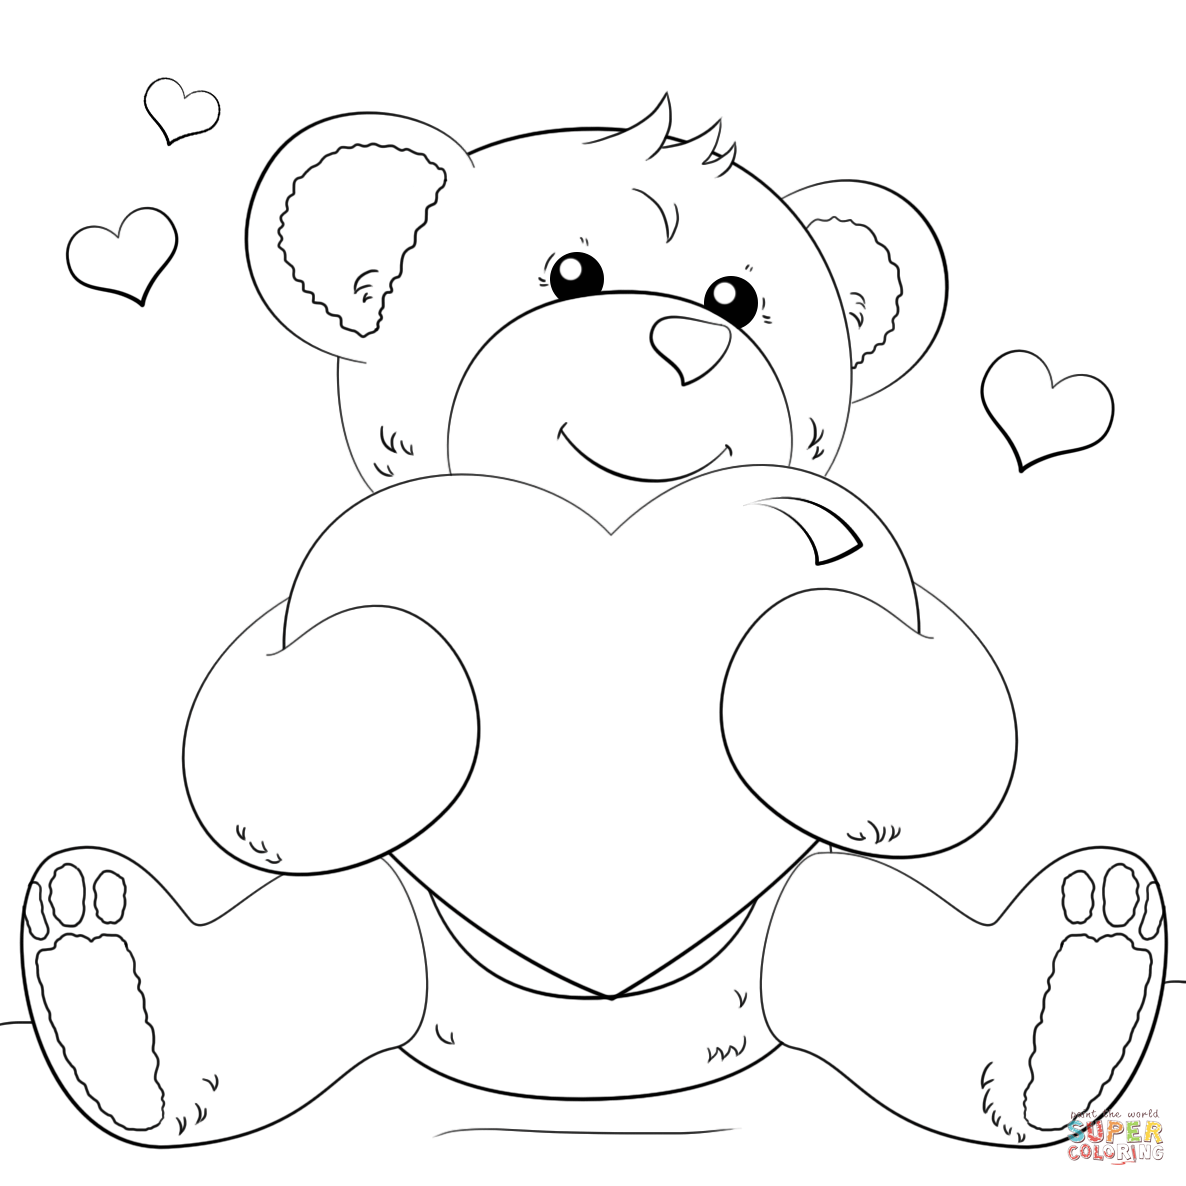 coloring picture love heart and key coloring pages at getcoloringscom free picture coloring love